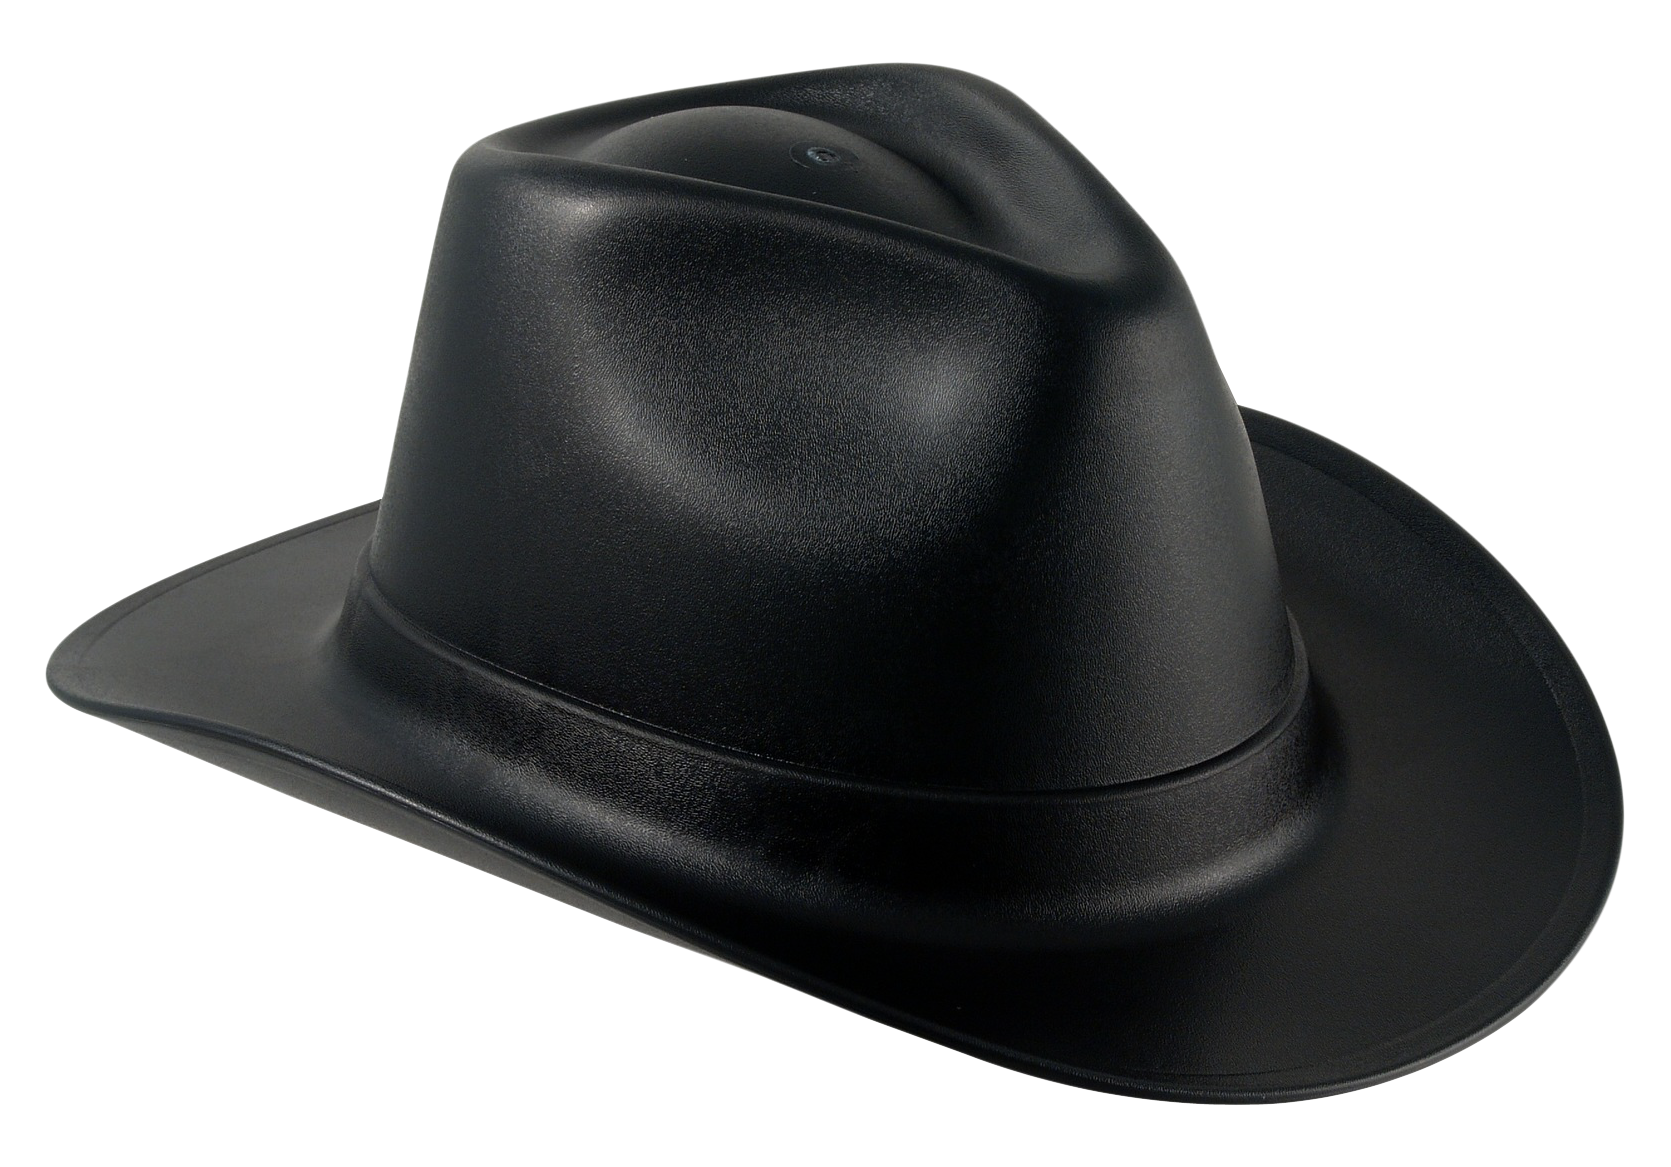 Cowboy Hat Png Image Purepng Free Transparent Cc0 Png Image Library Slot machine online casino baccarat video game, others png. cowboy hat png image purepng free